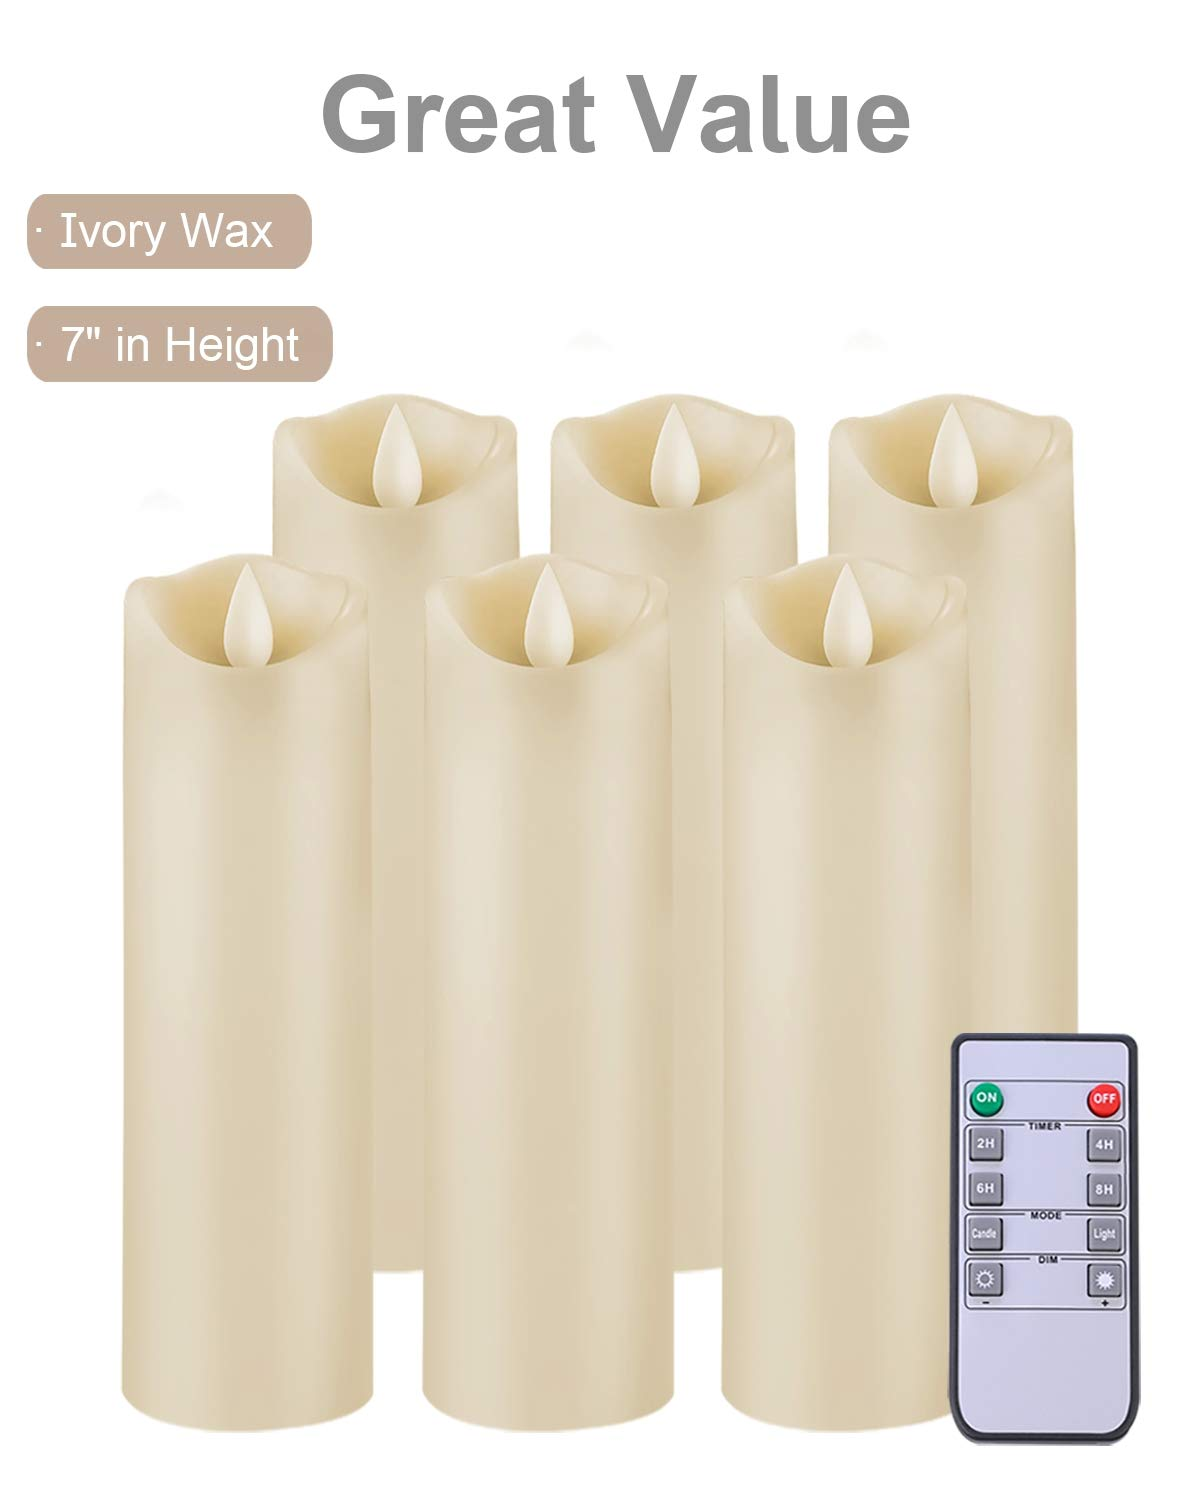 5PLOTS Flameless Candles with Remote and Timer (H7'' x D2.2'') - Flickering LED Pillar Candles with Dancing Flame - Battery Operated, Ivory Wax, Set of 6 by 5PLOTS (Image #2)